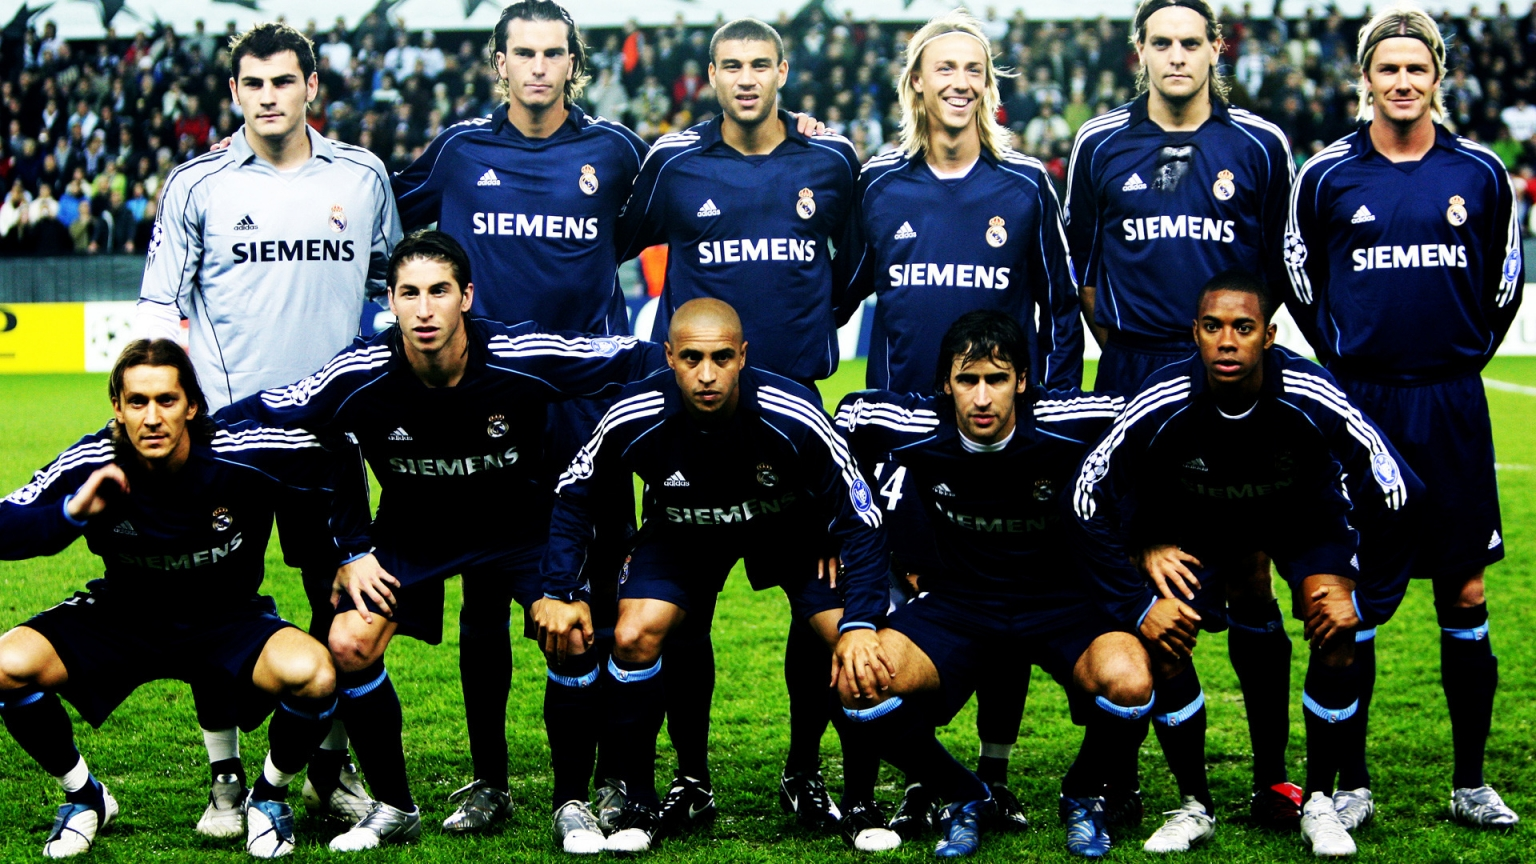 Real Madrid Team for 1536 x 864 HDTV resolution